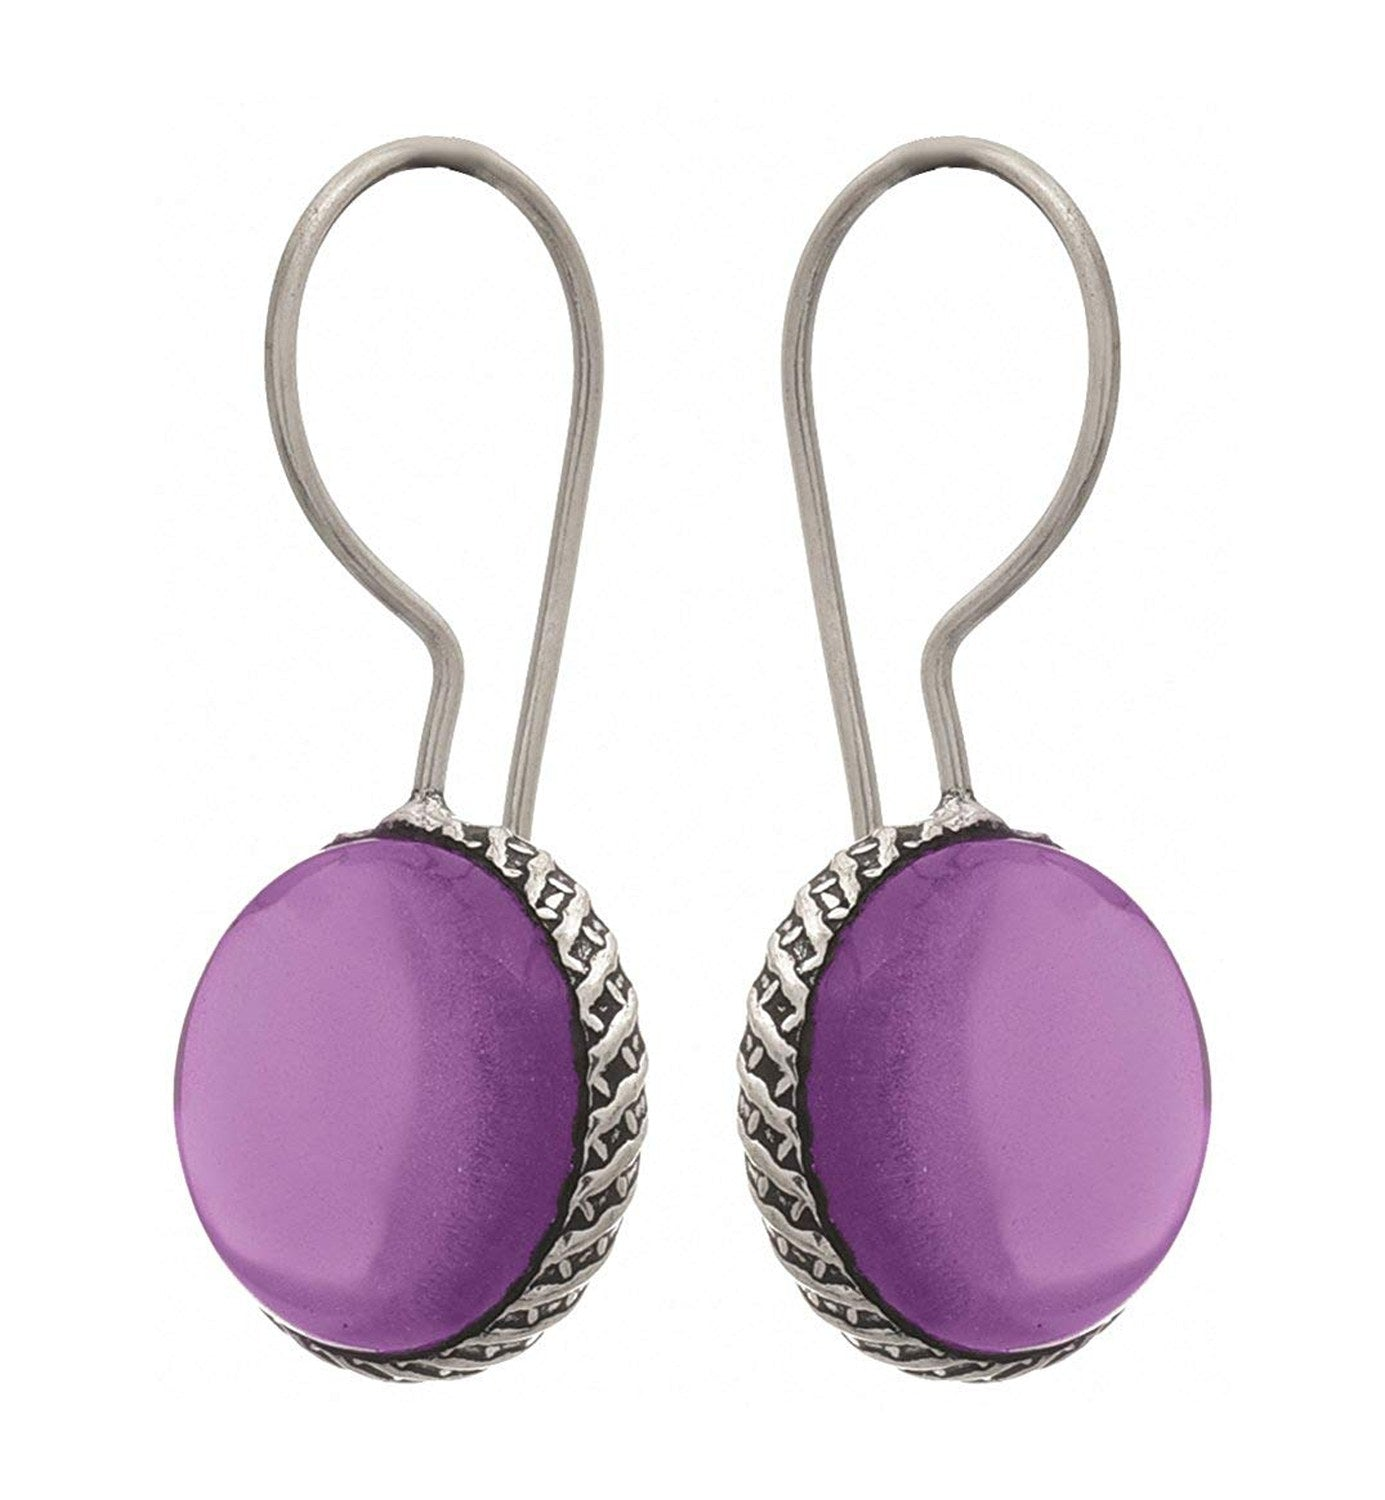 Traditional Ethnic Handmade German Silver Plated Oxidised Pink Opal Gemstone Designer Earring For Women & Girls.